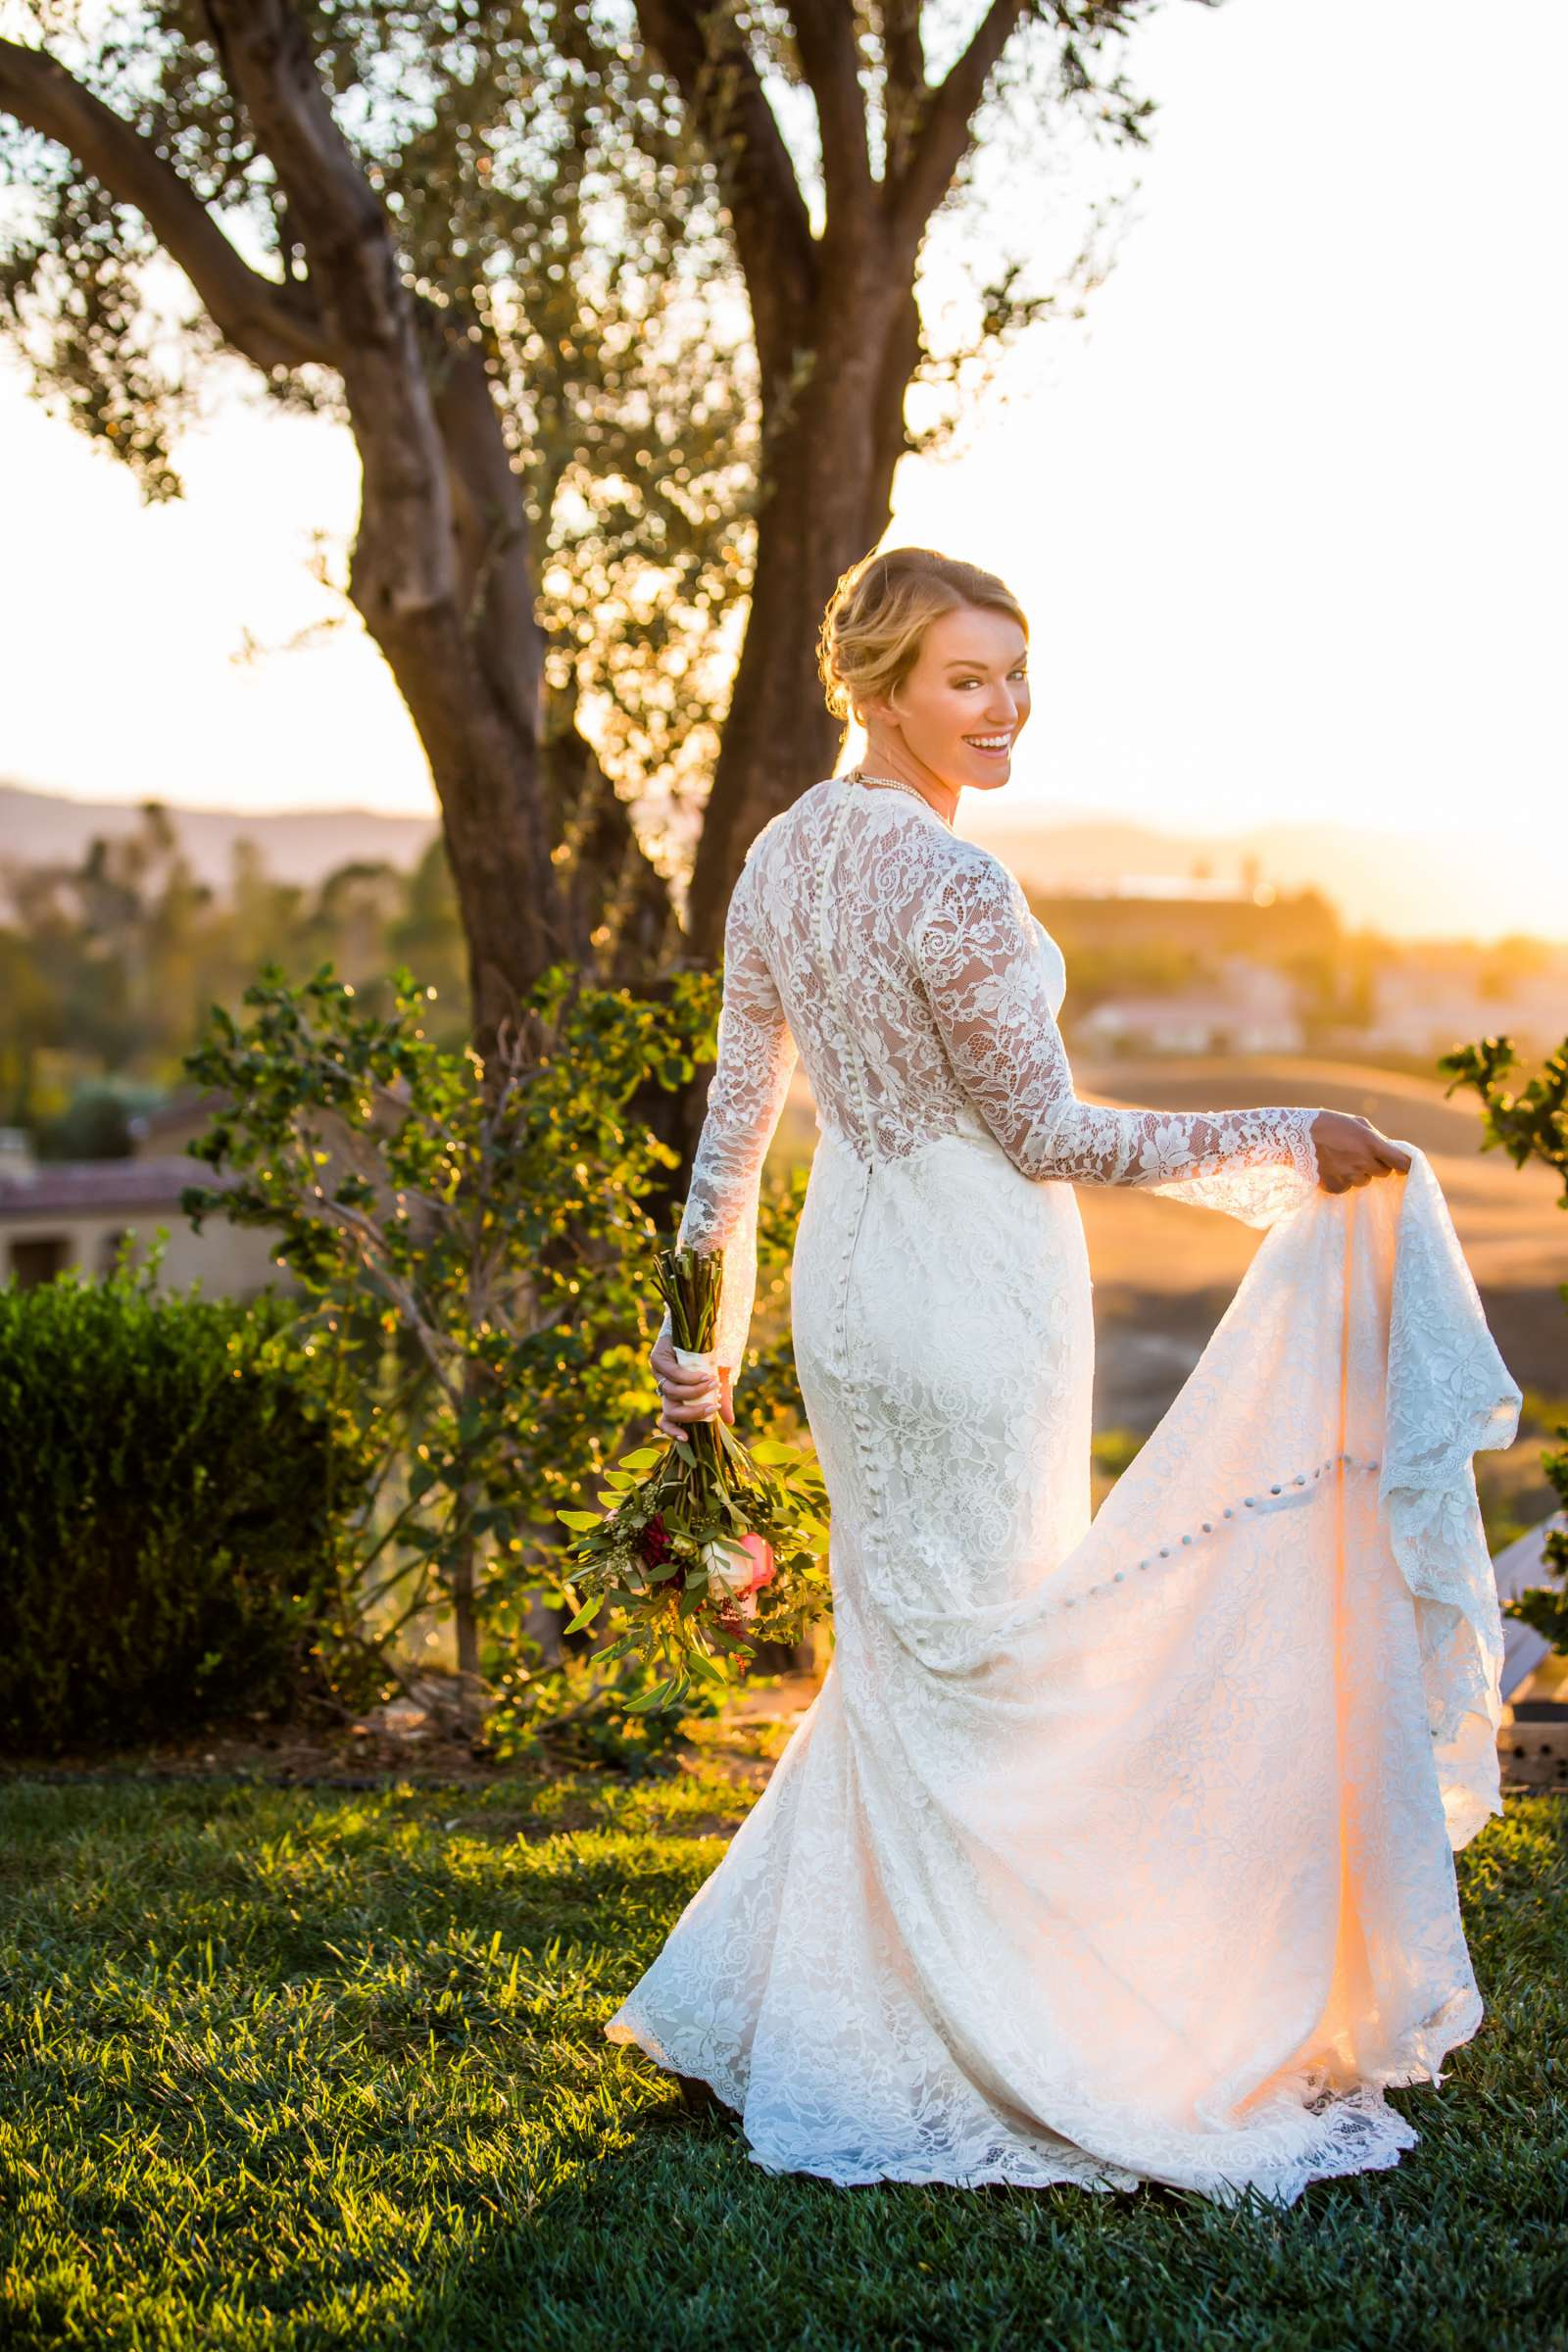 Callaway Vineyards & Winery Wedding, Ryann and Manuel Wedding Photo #278534 by True Photography